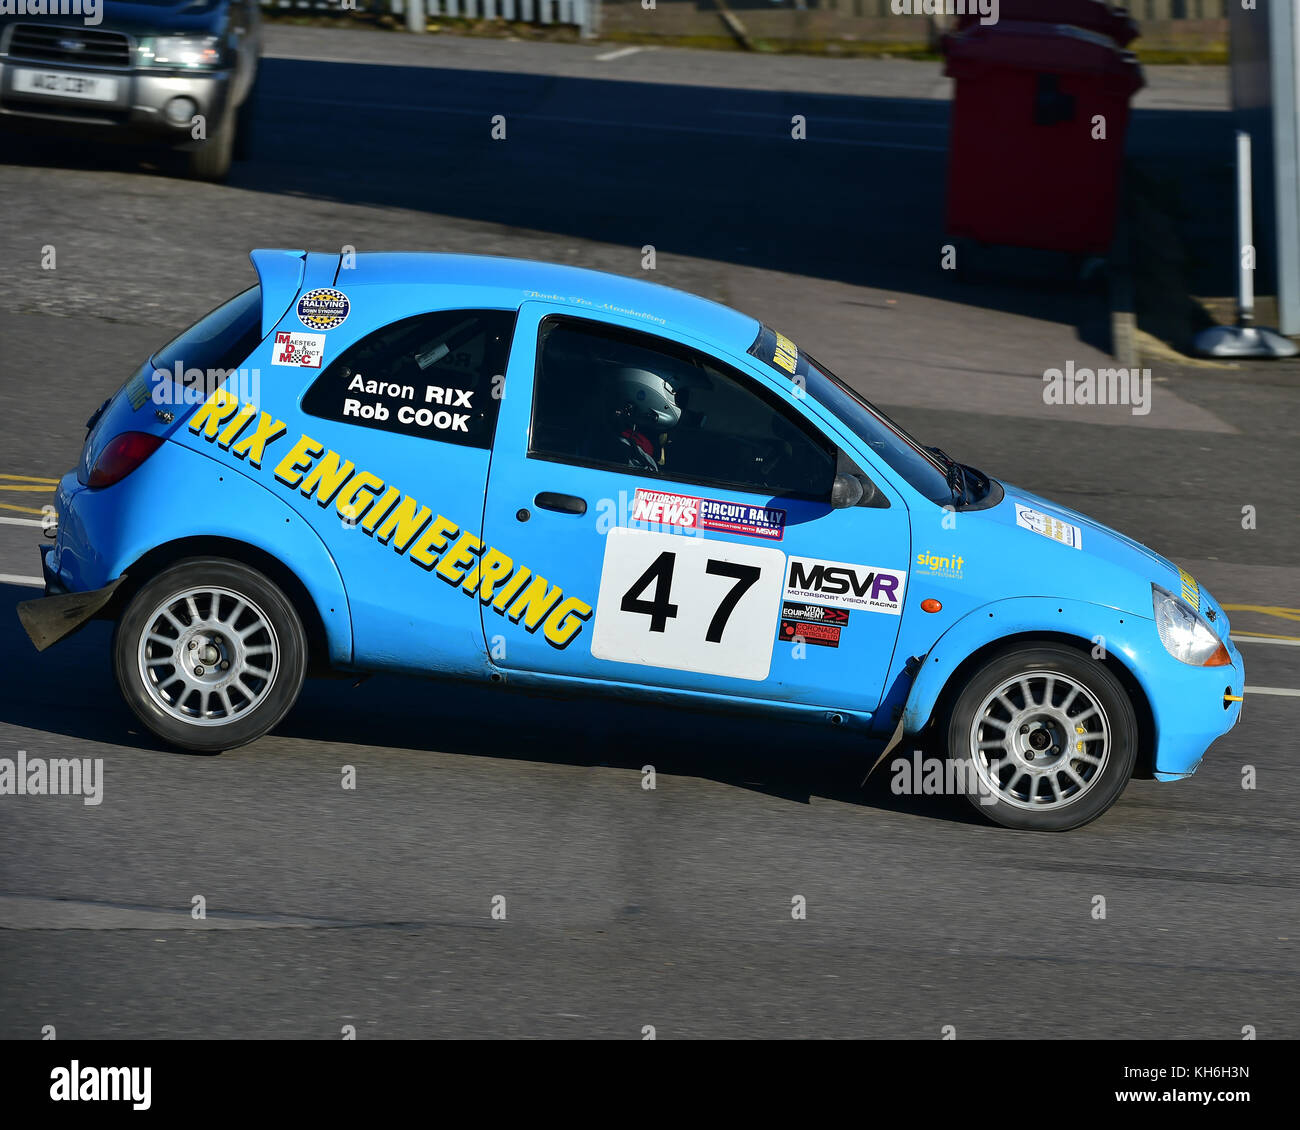 Aaron Rix Stephen Greenhill Ford Ka Mgj Rally Stages Chelmsford Motor Club Brands Hatch Saturday St January  Msv Rally Racing Rallyi